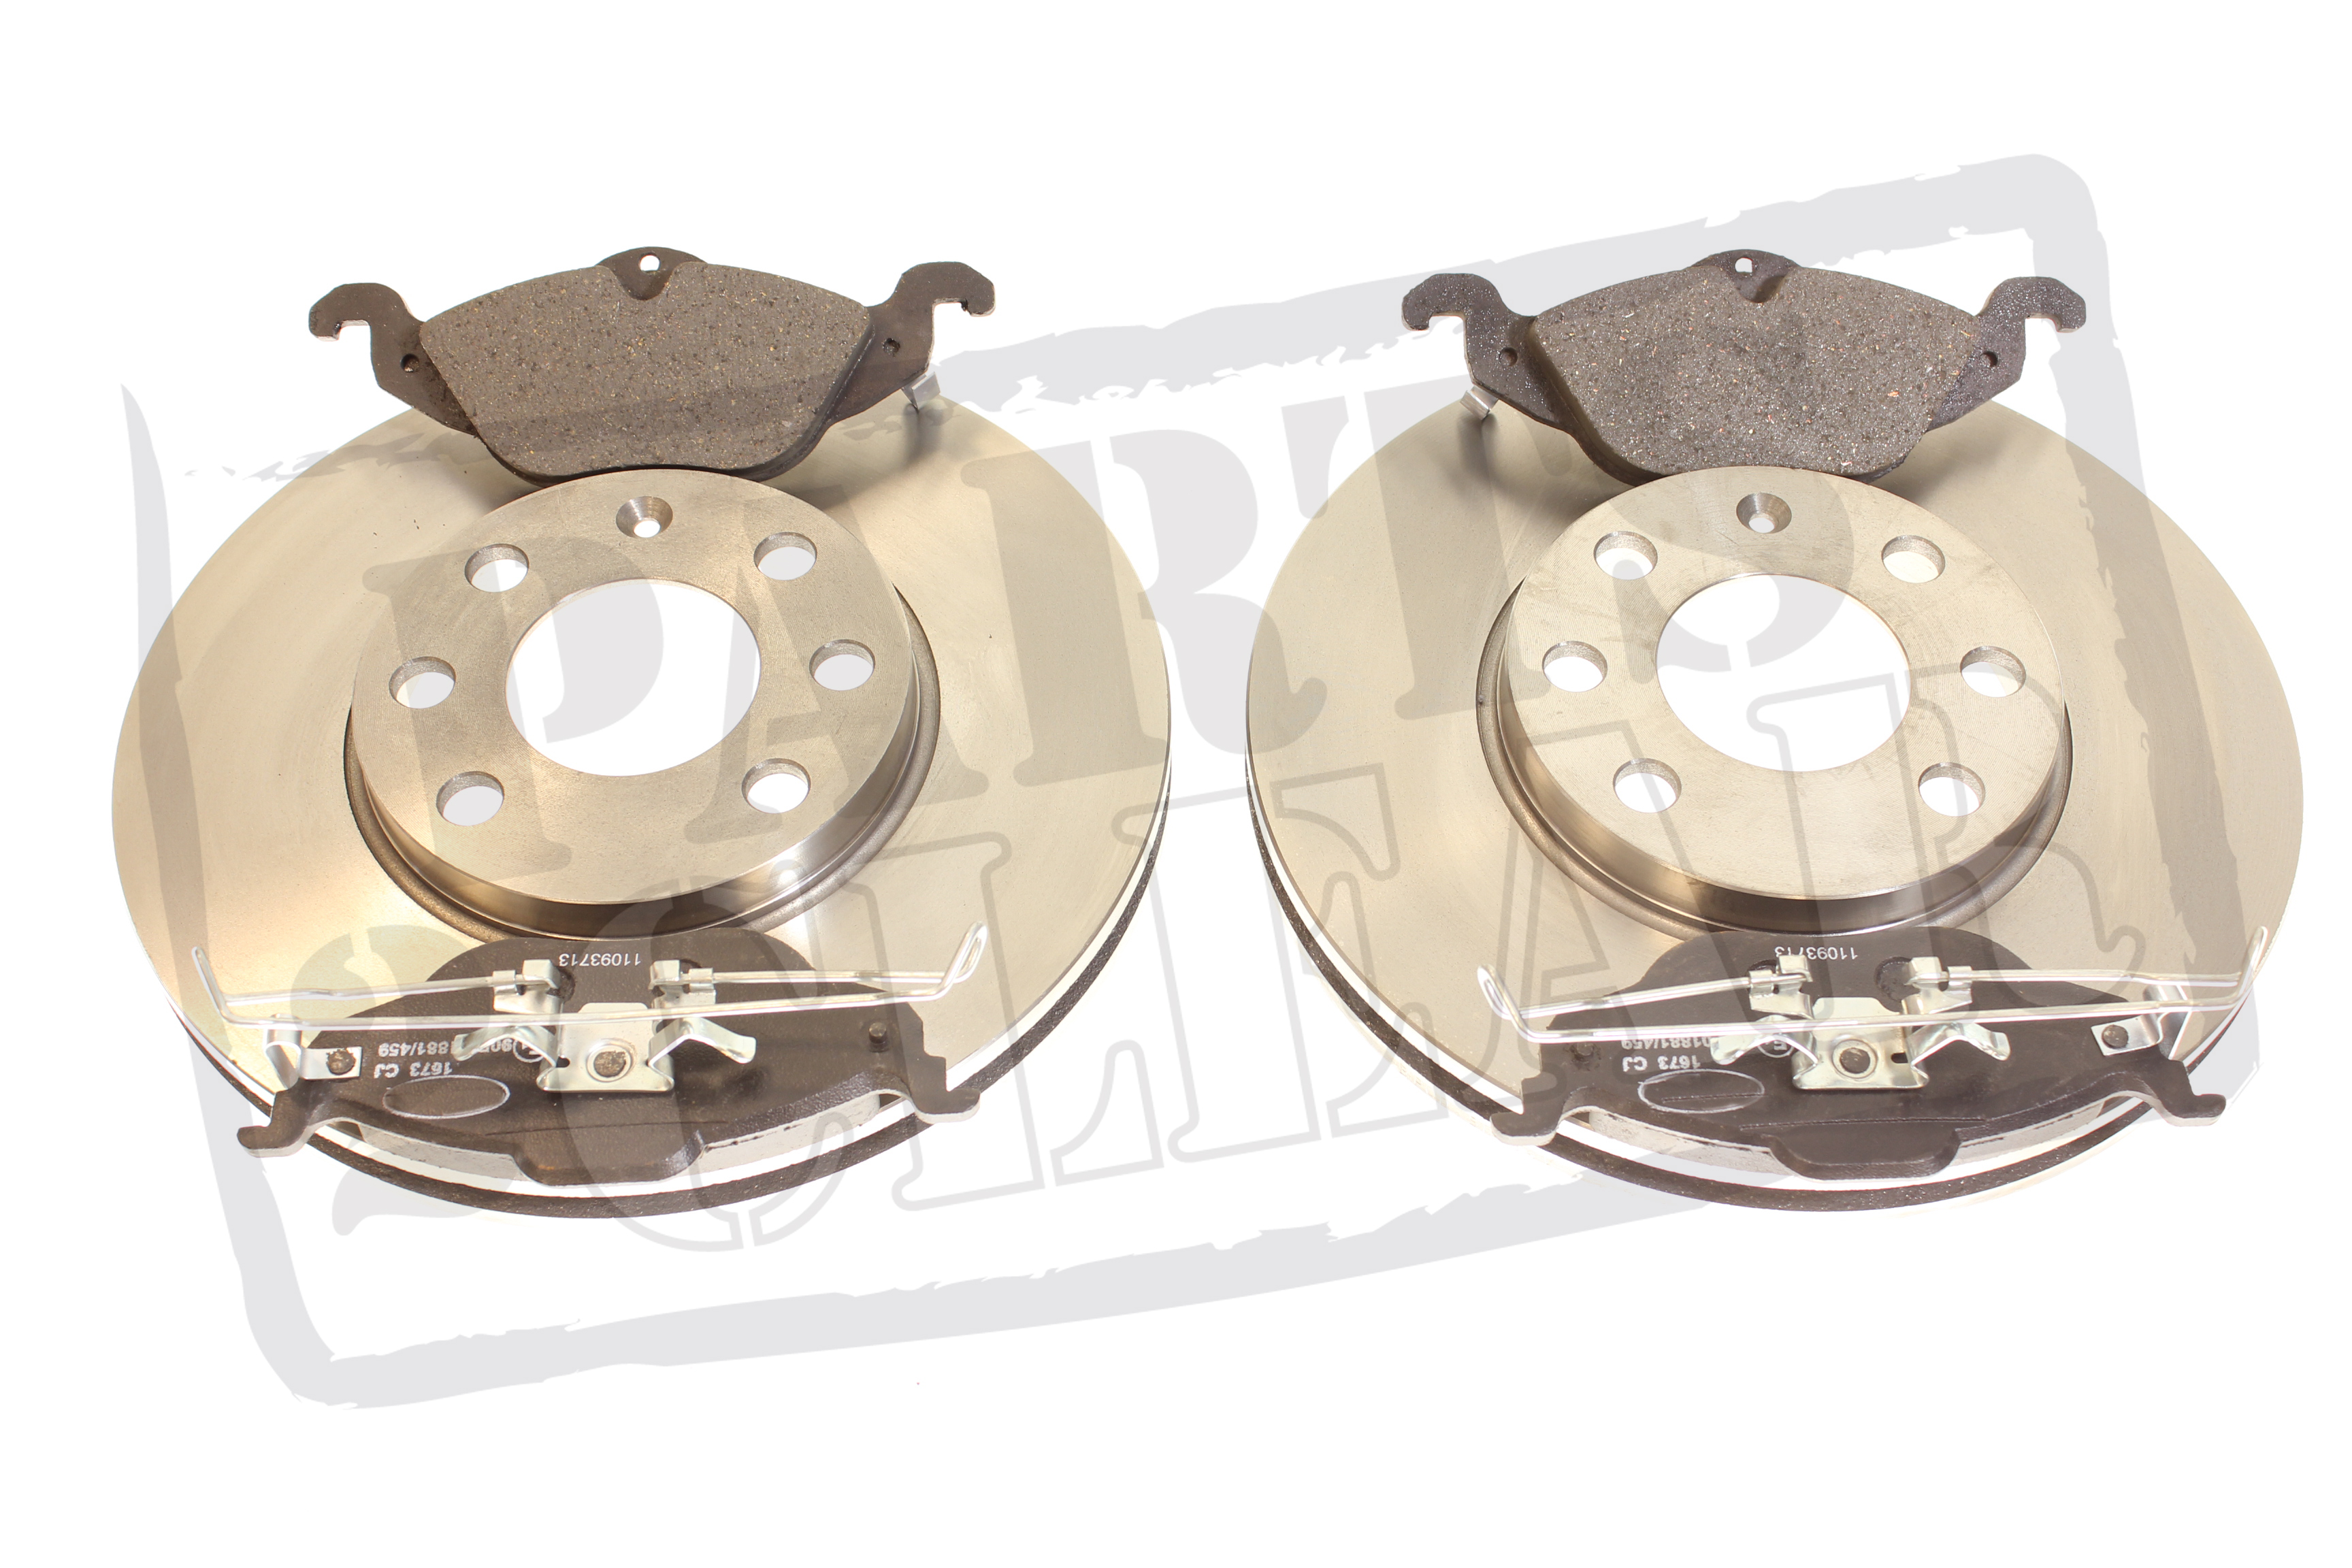 VAUXHALL ASTRA MK4 FRONT BRAKE DISCS + PADS 98-04 4STUD